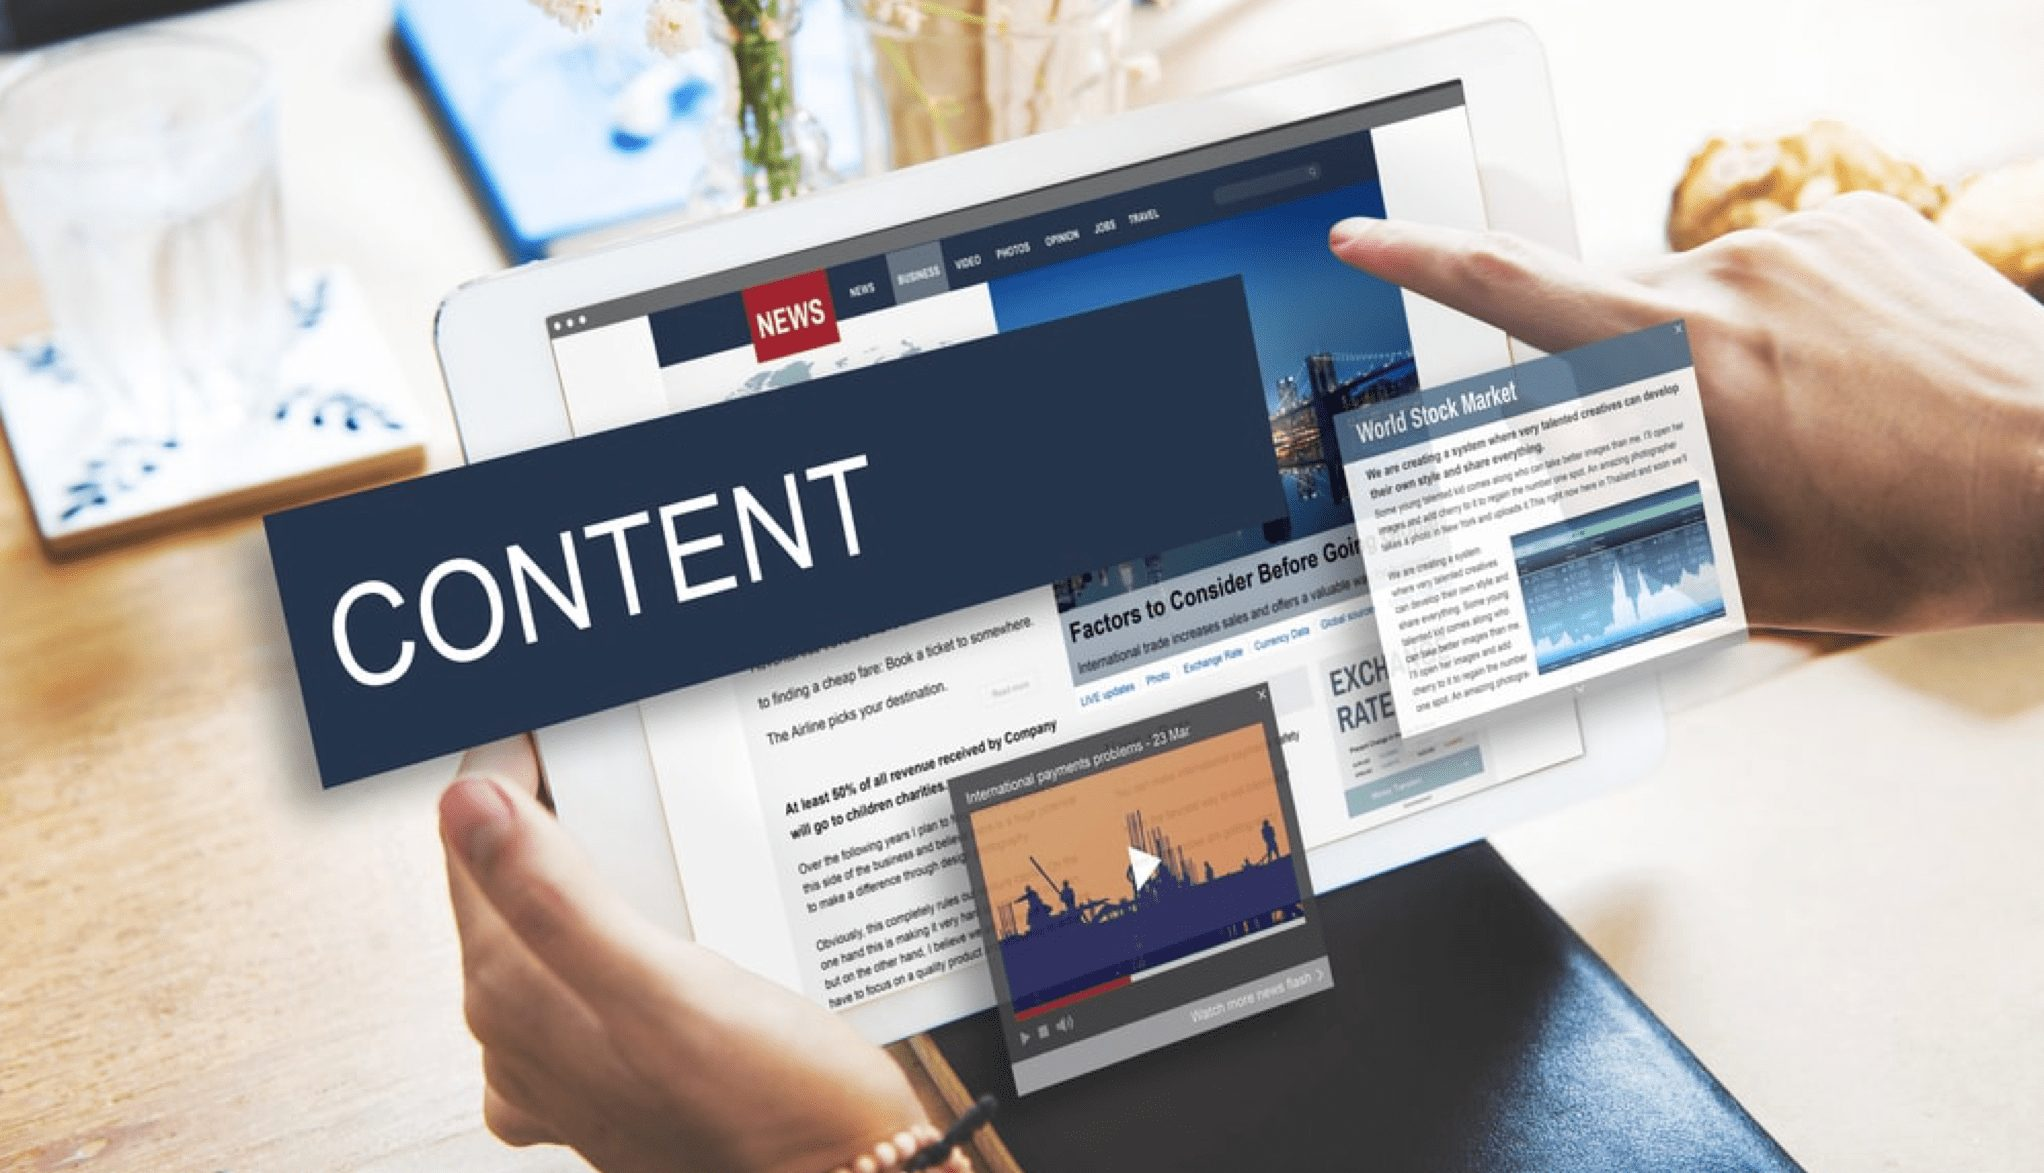 Content Marketing: Where SEO & Content Meet